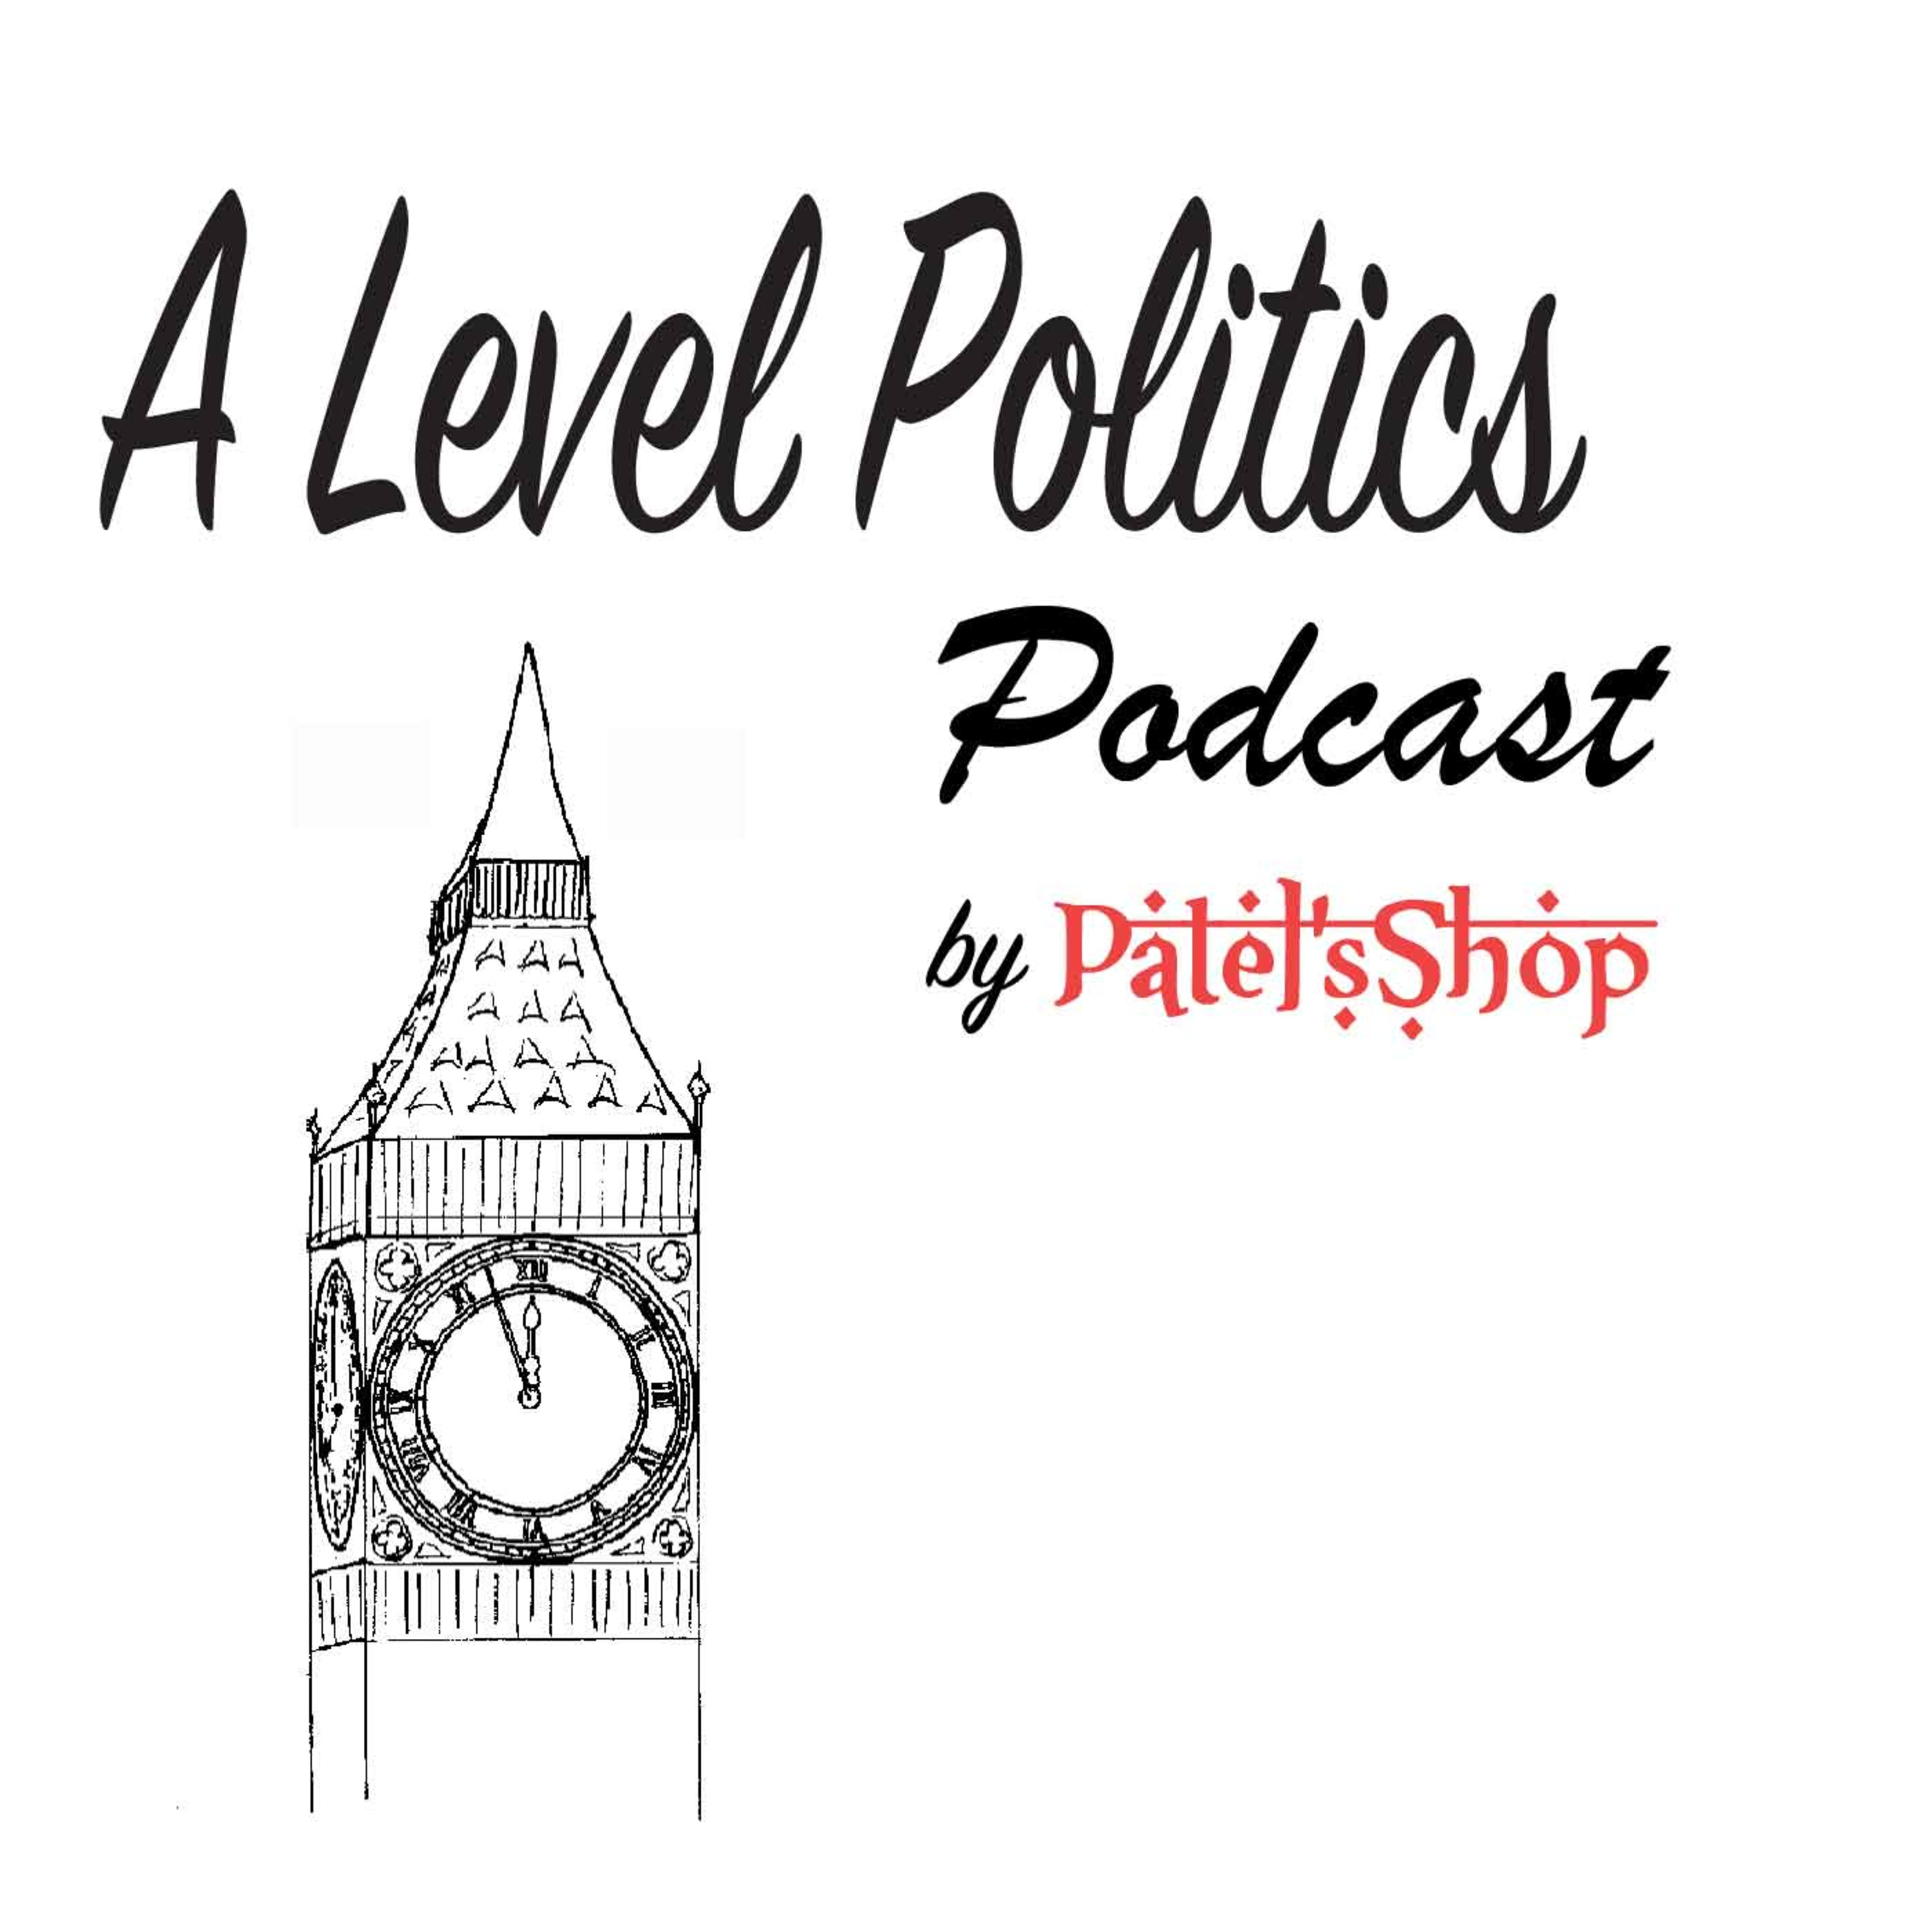 A level politics UK and global podcast